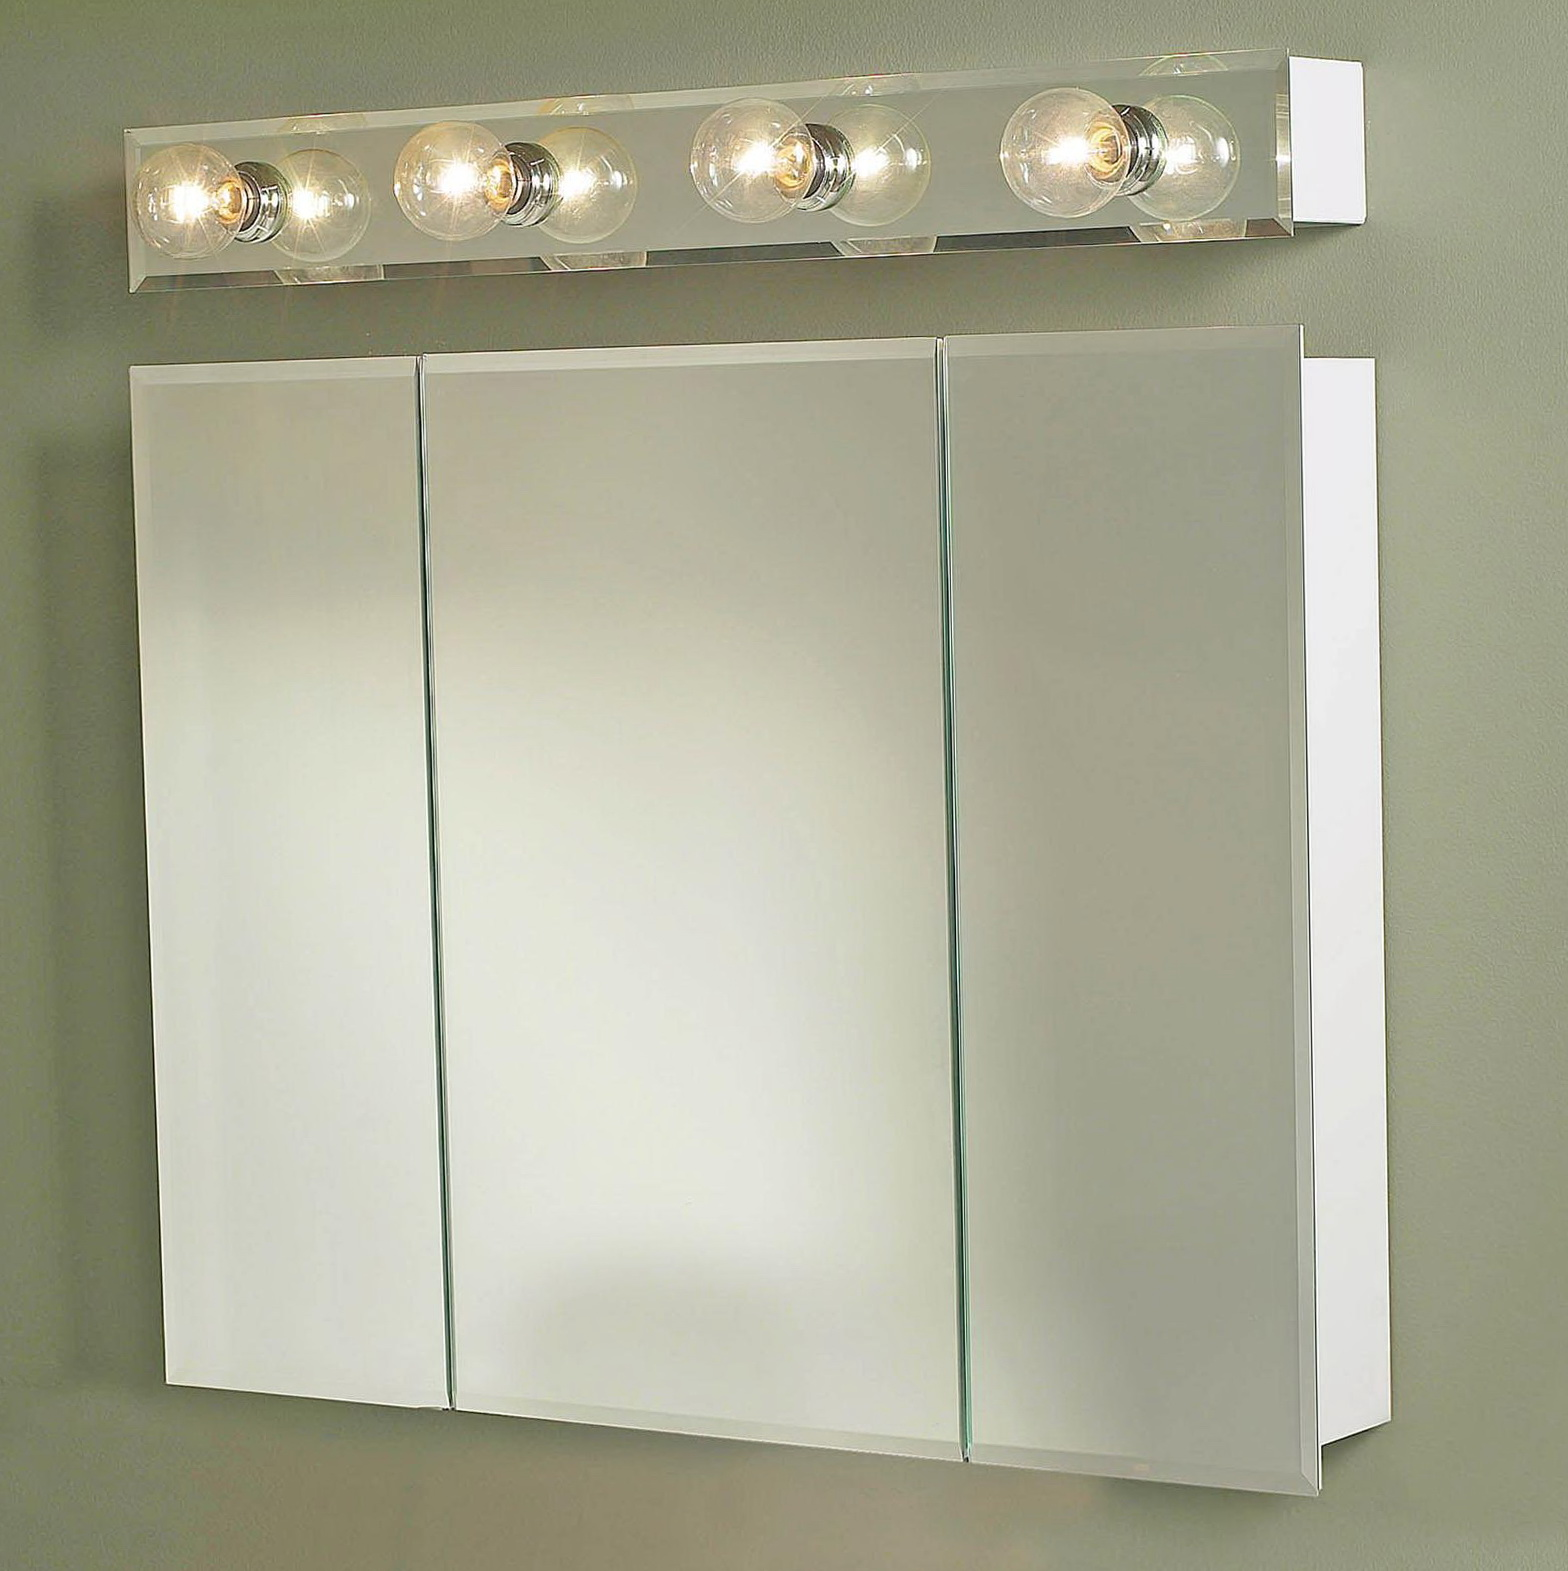 Mirrored Medicine Cabinet With Lights